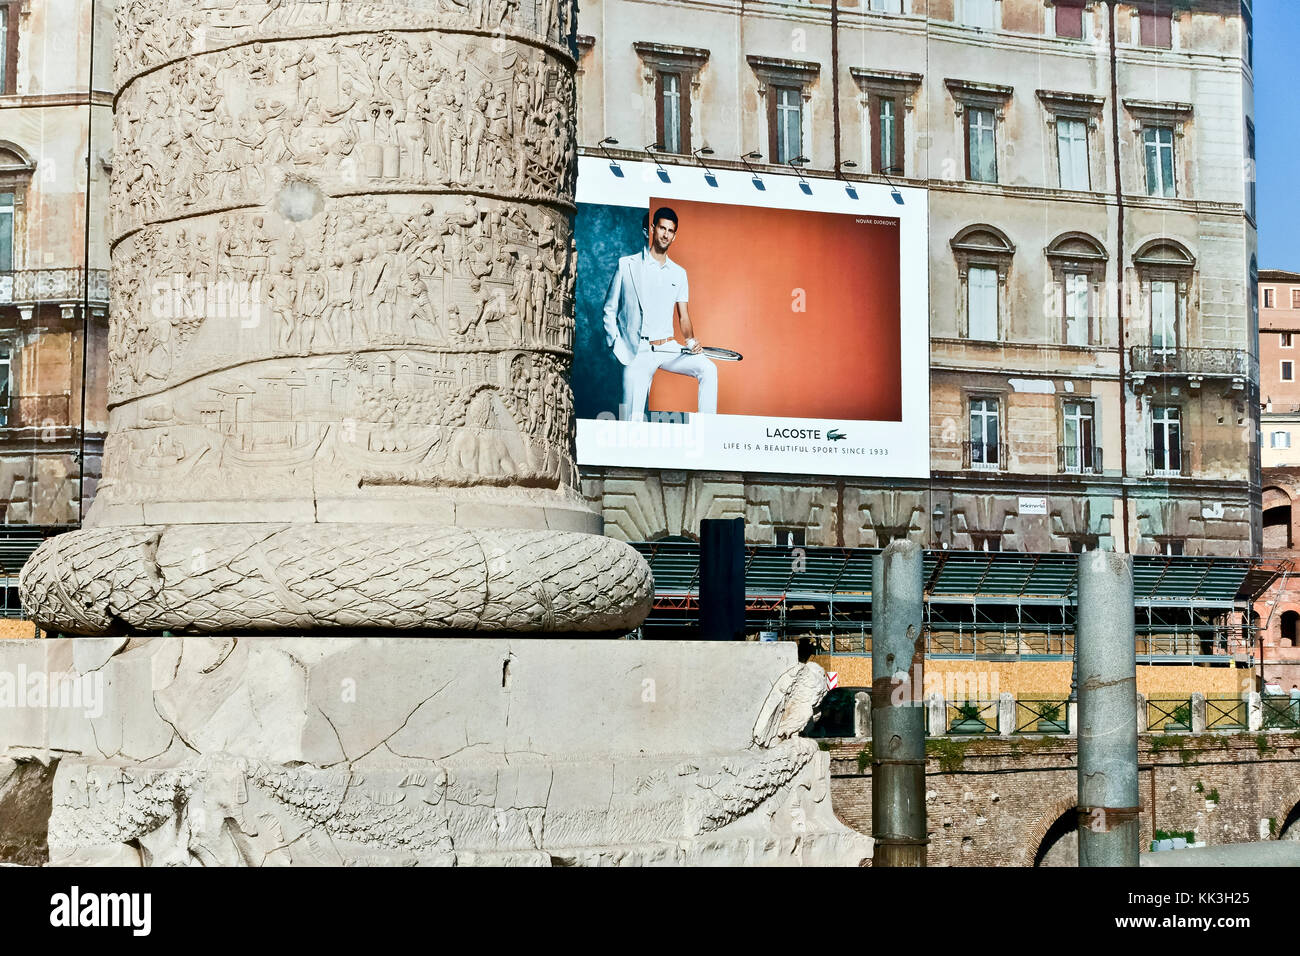 Lacoste advertising billboard on a building scaffolding at Trajan's Market Forum. Trajan's column close up. Rome, - Stock Image